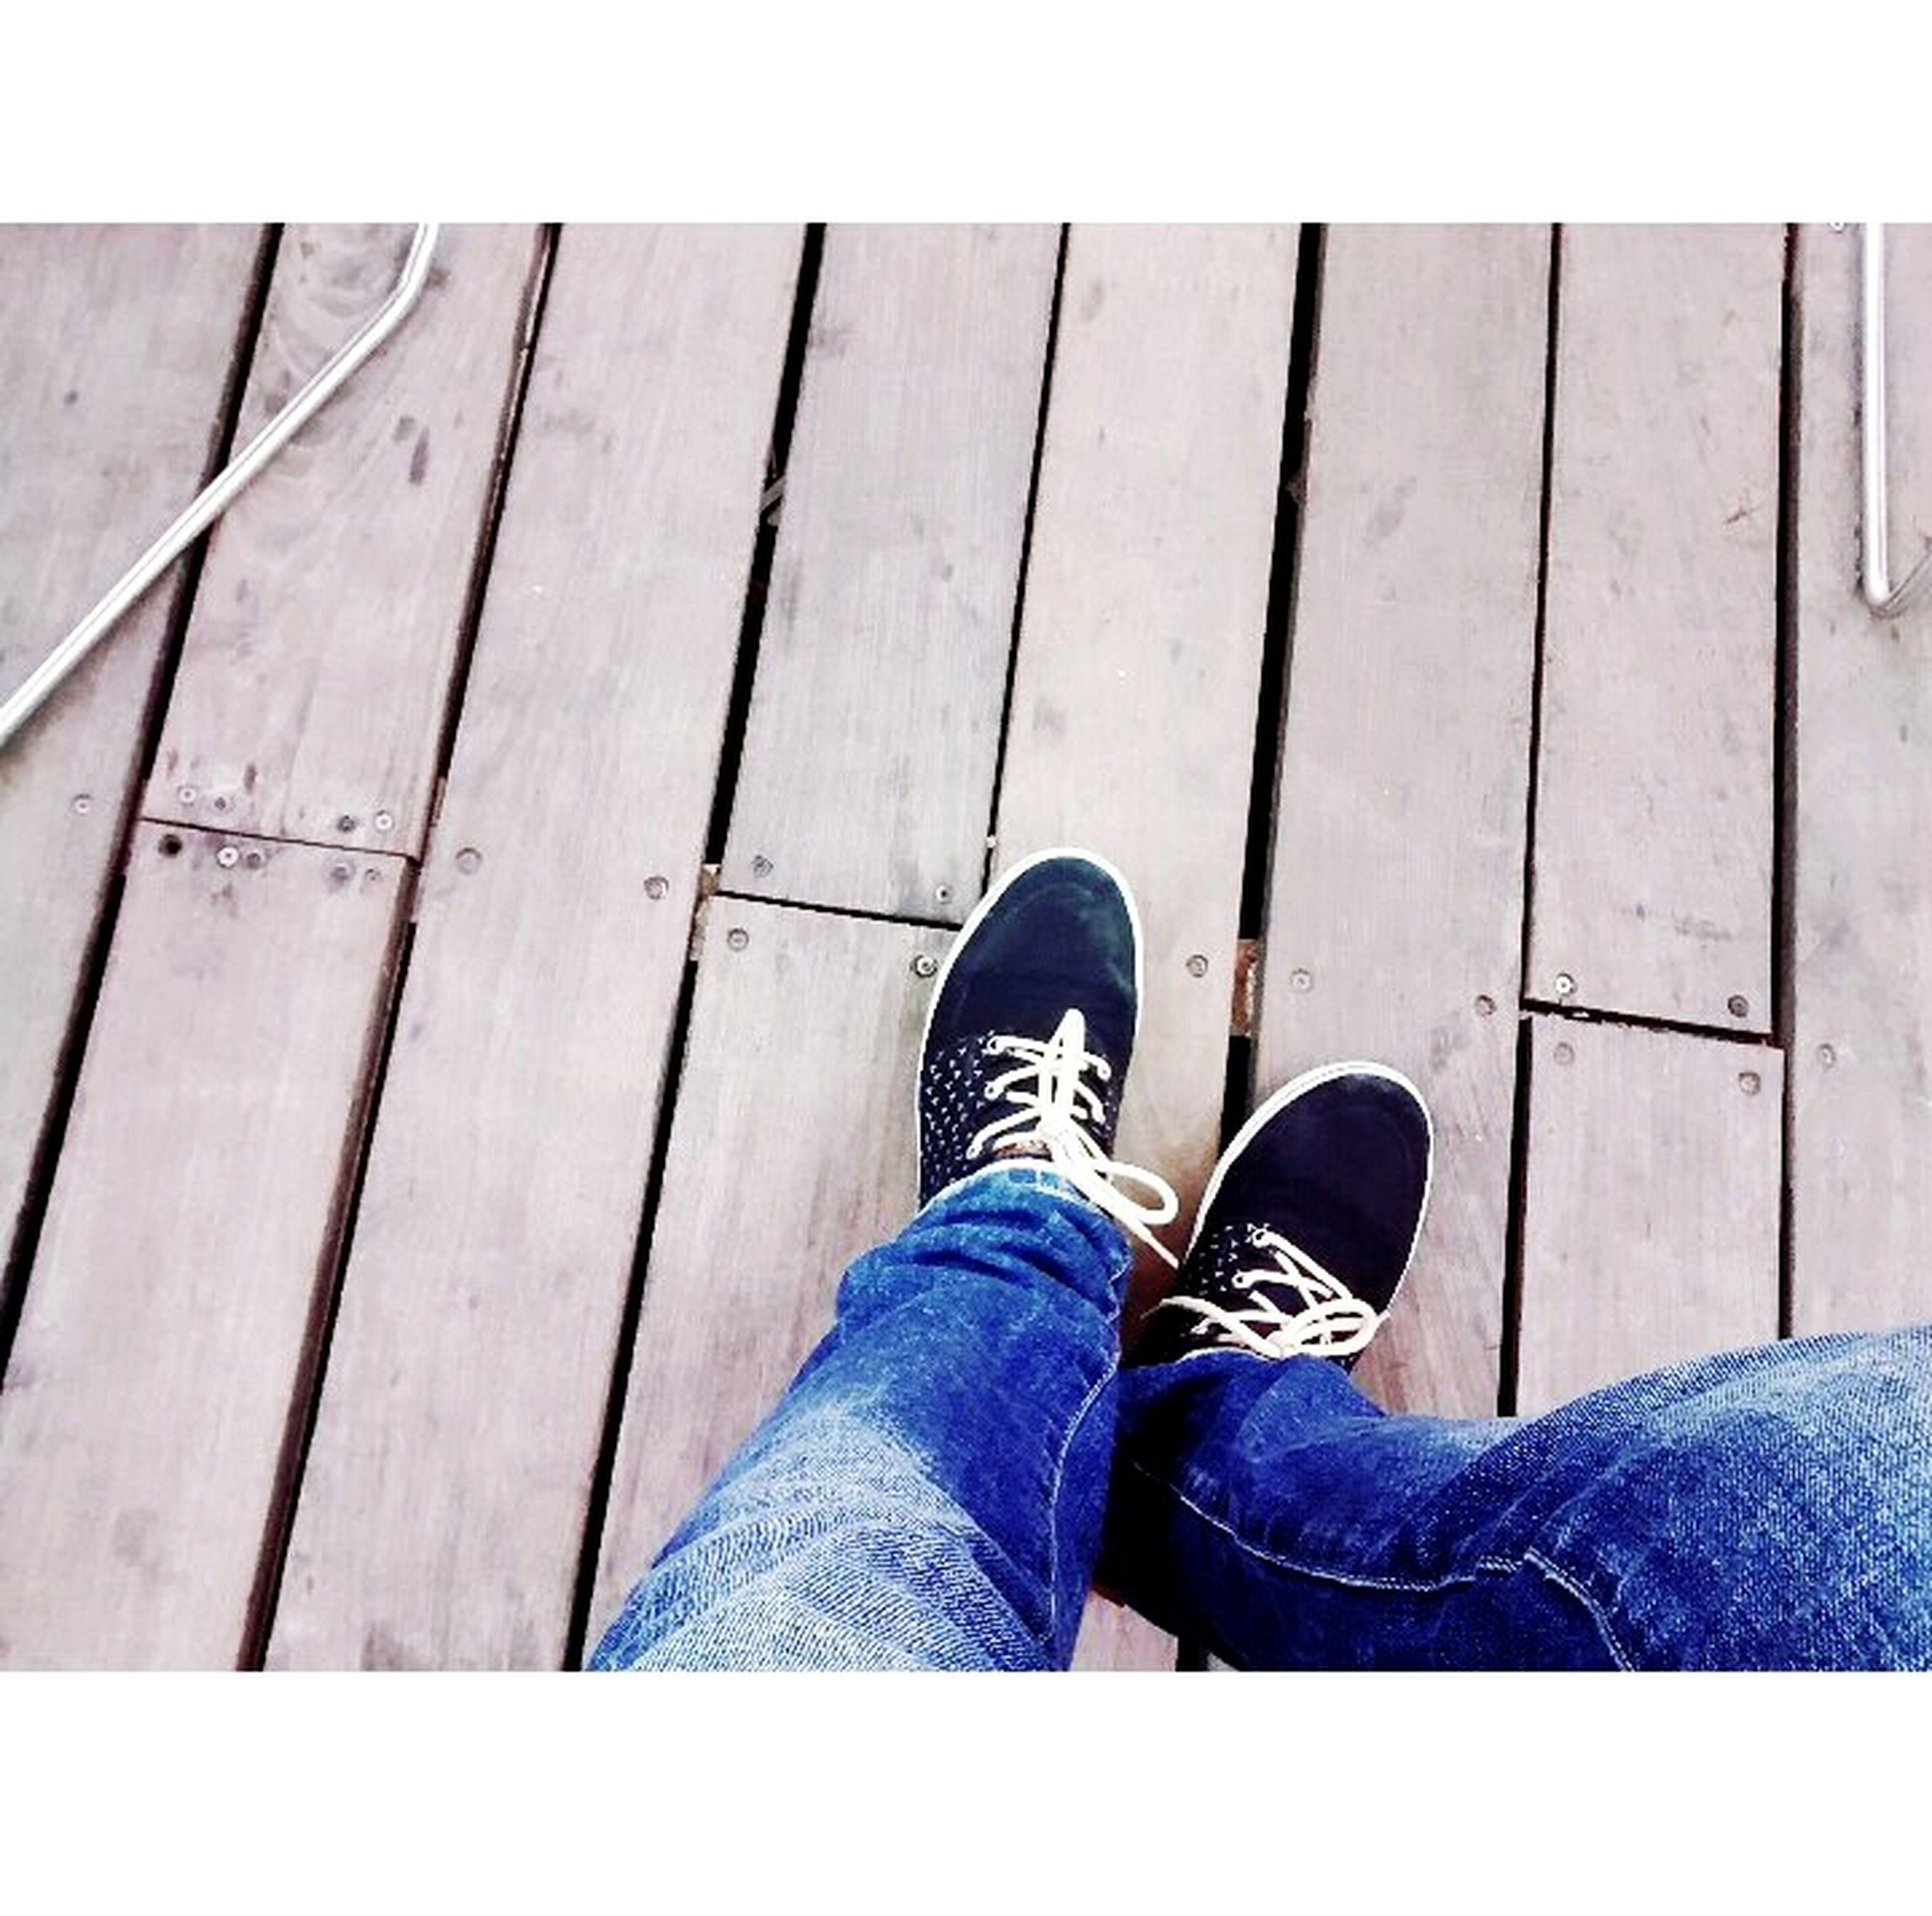 low section, person, shoe, jeans, personal perspective, human foot, lifestyles, standing, footwear, relaxation, men, high angle view, blue, leisure activity, wood - material, casual clothing, sitting